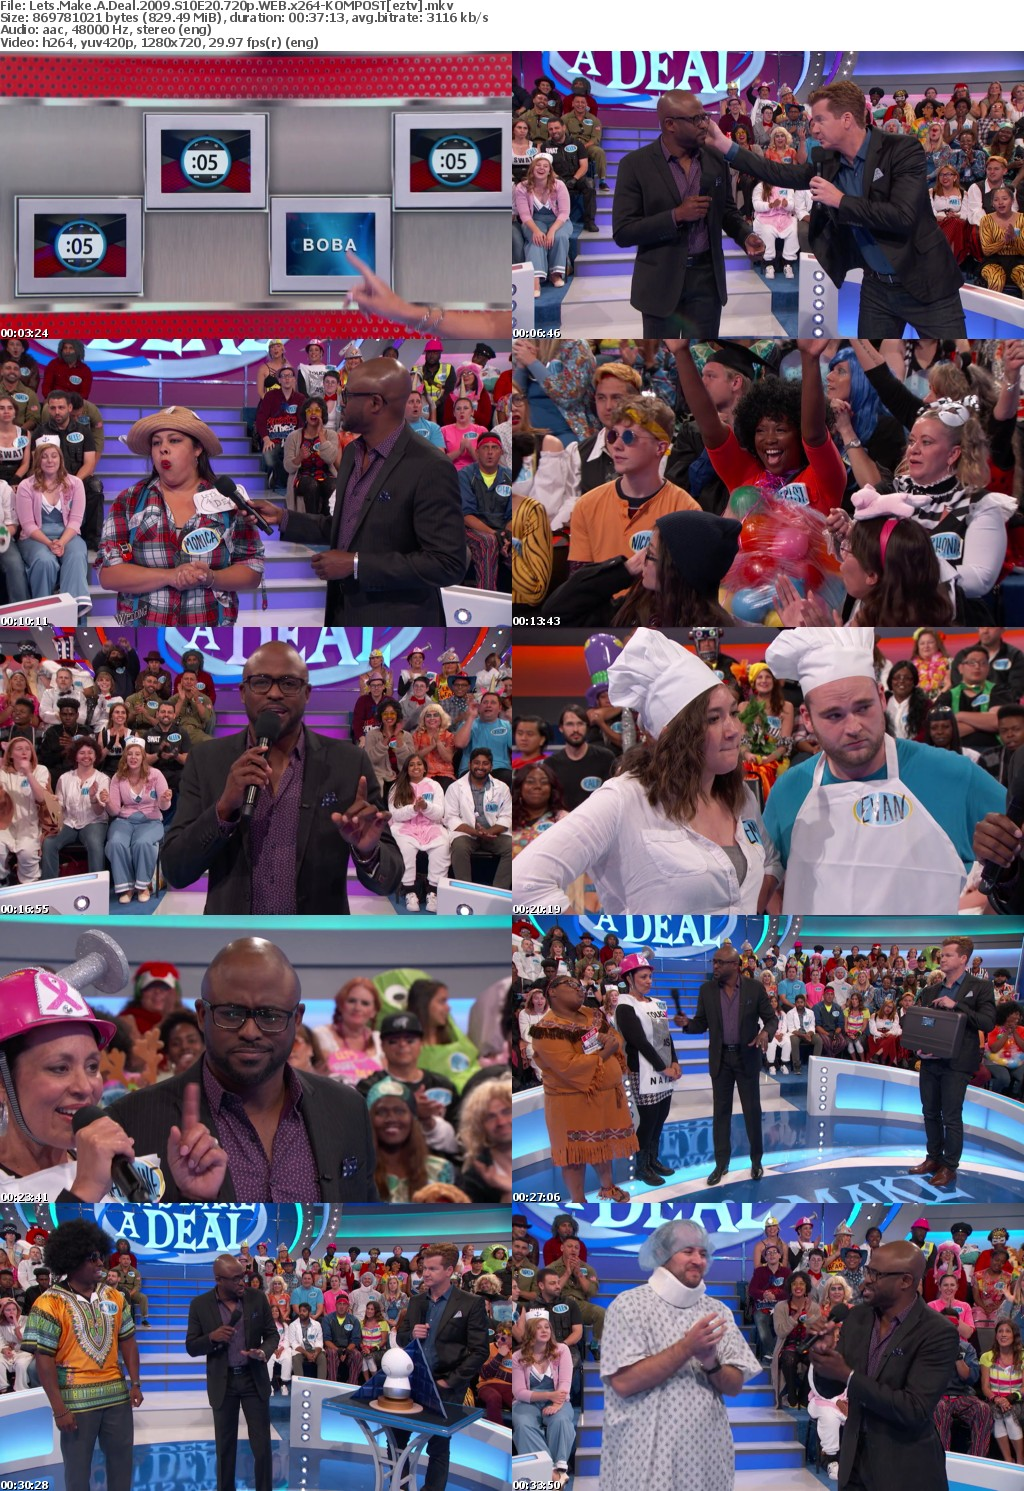 Lets Make A Deal (2009) S10E20 720p WEB x264-KOMPOST